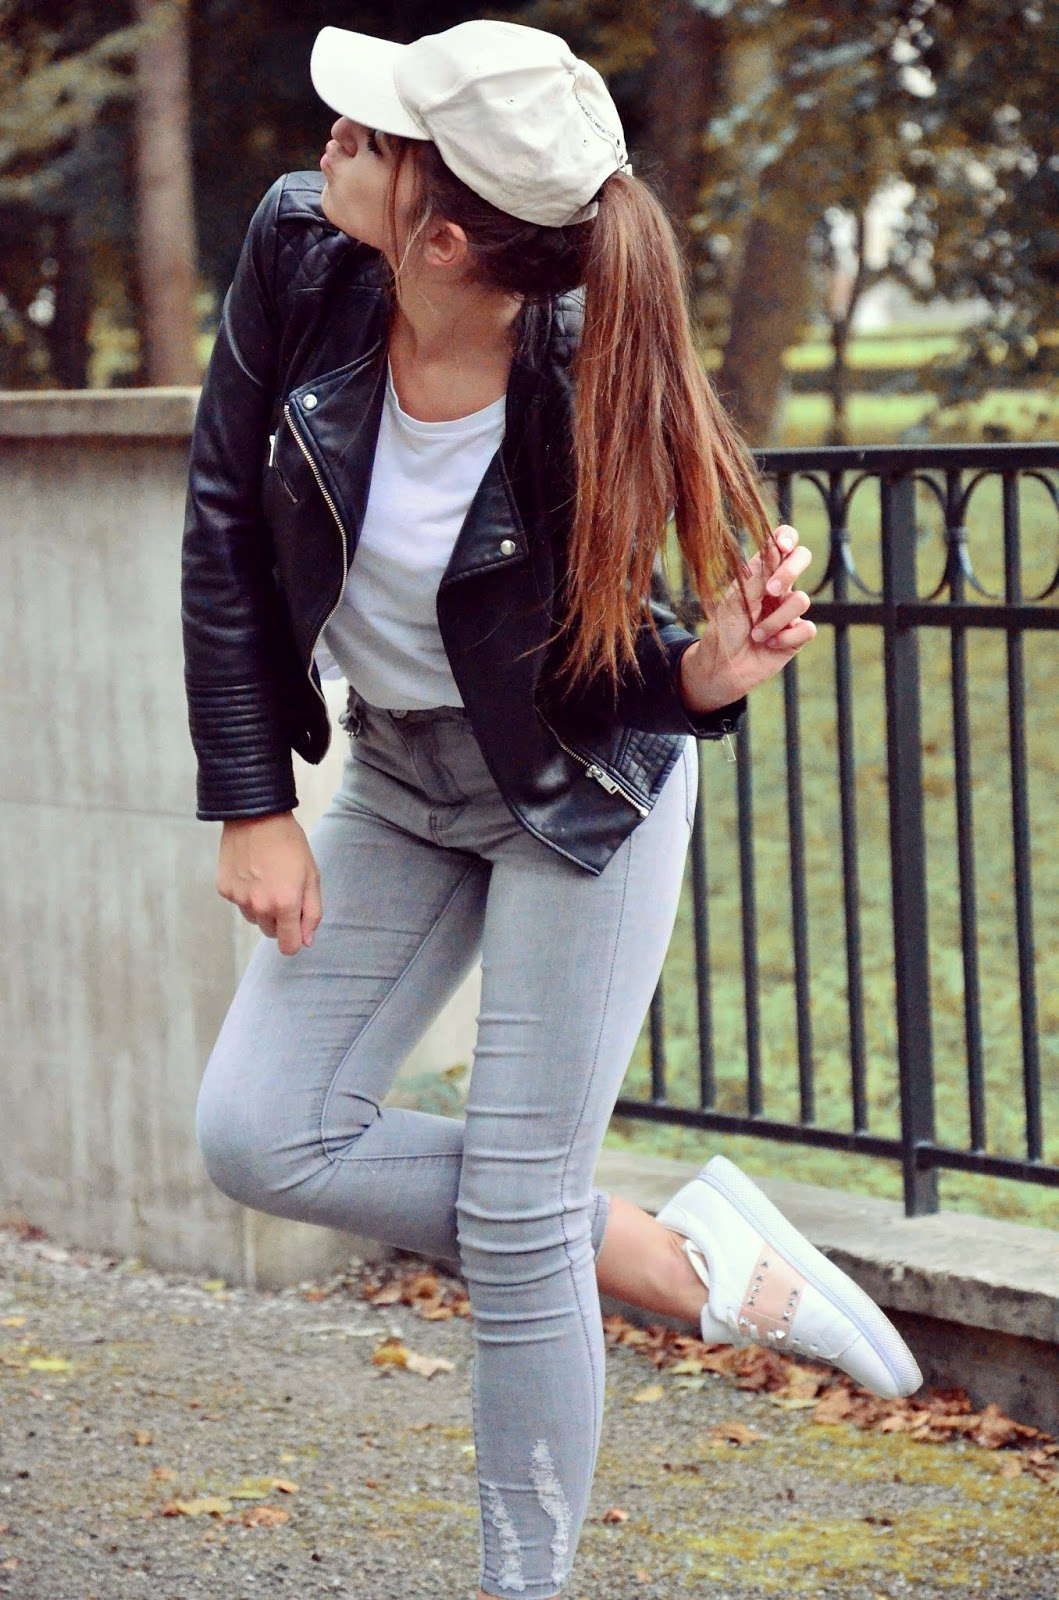 WHITE & BLACK, SPORTY OOTD